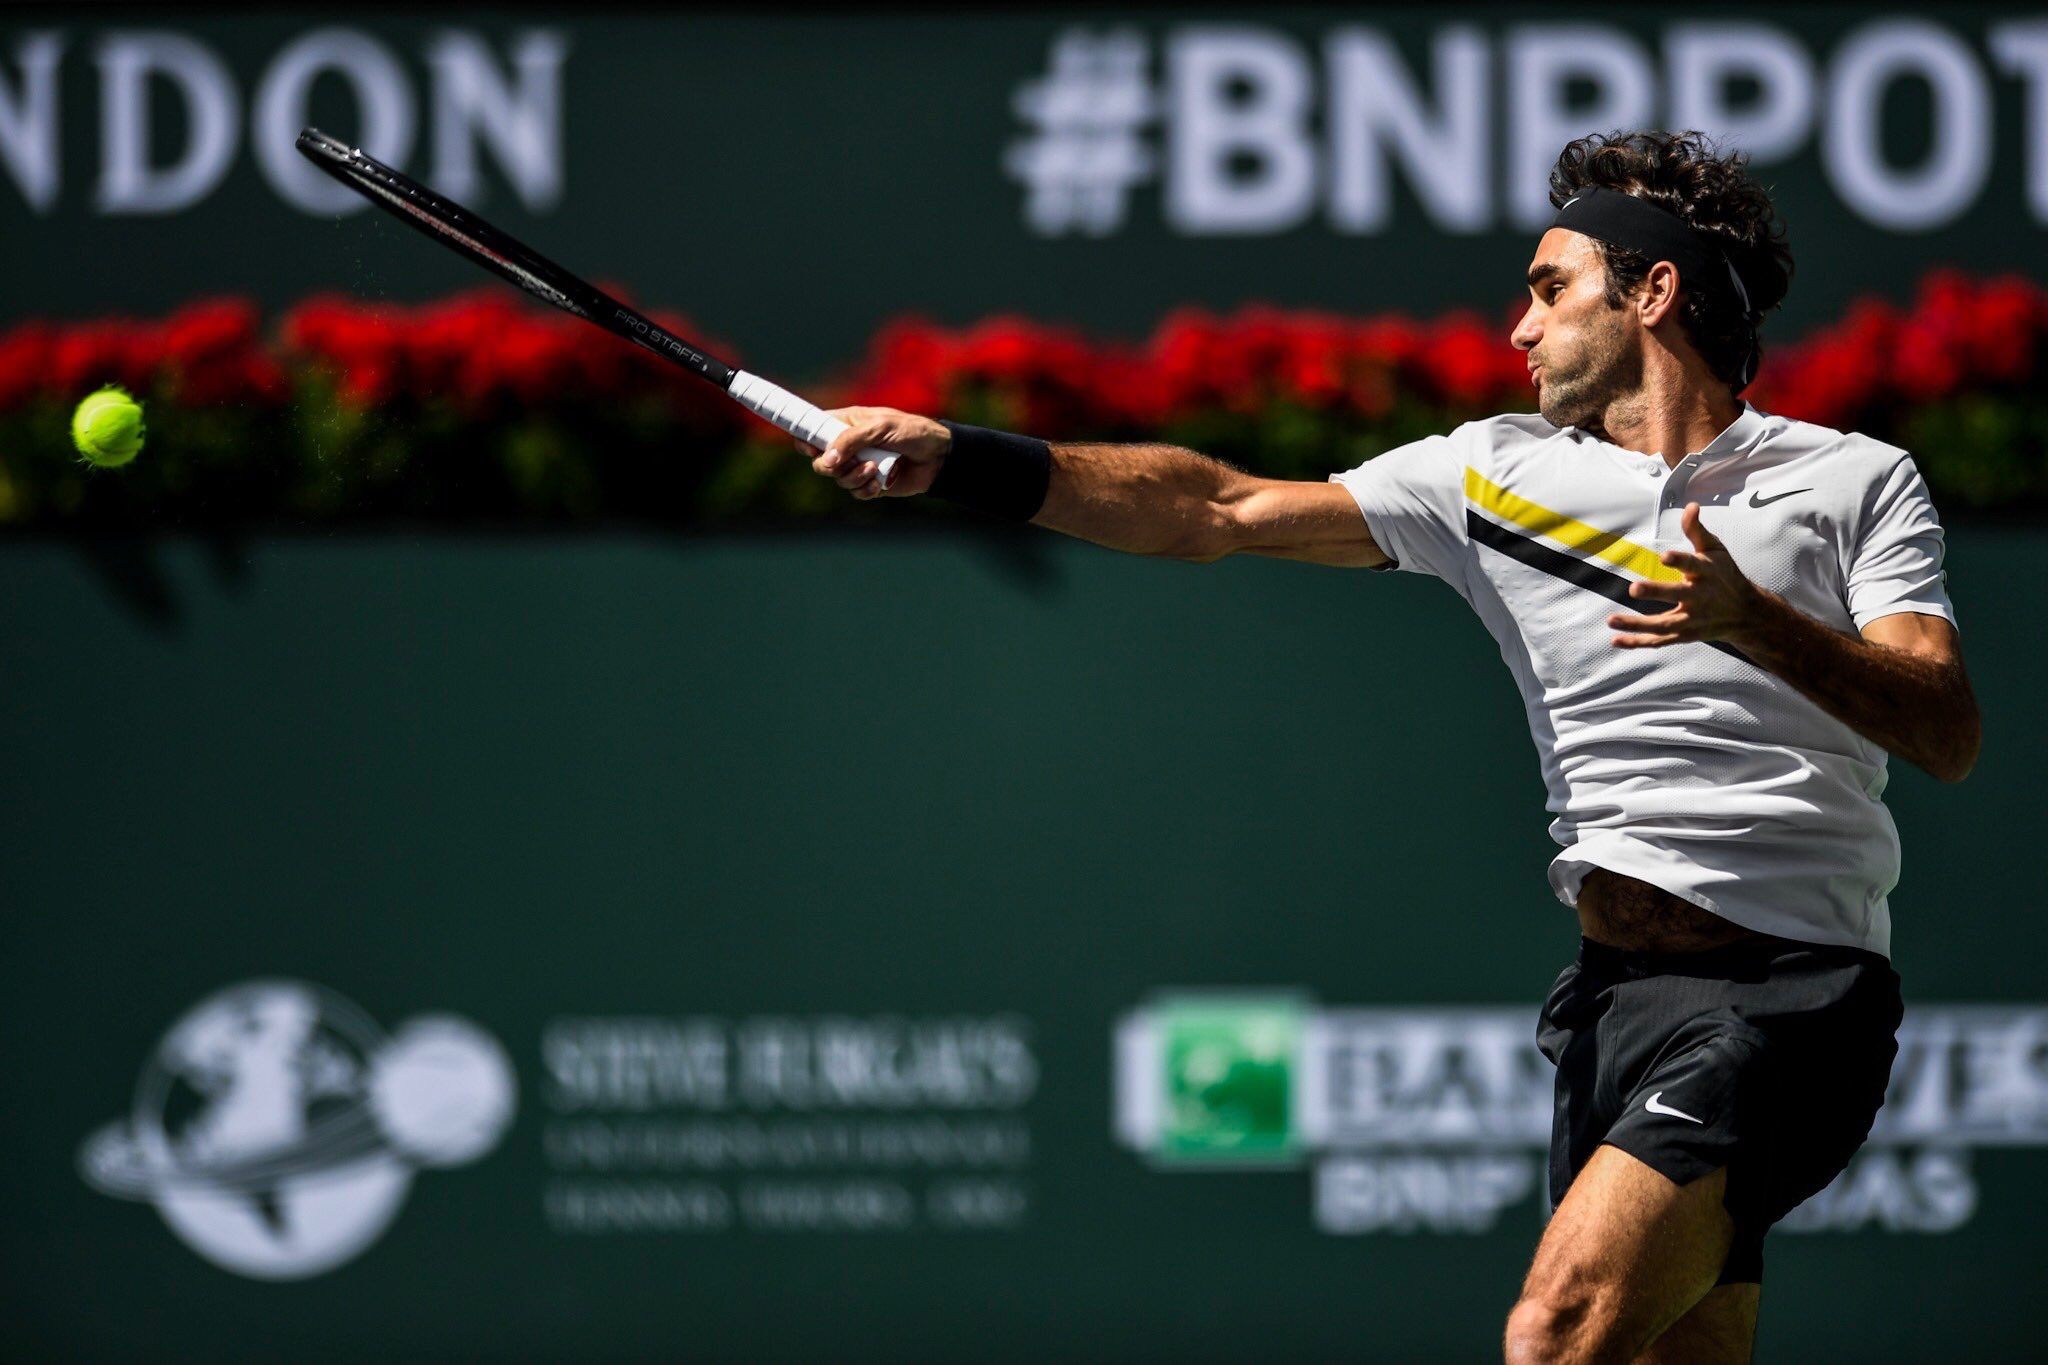 Roger Federer 2018 BNP Paribas Open (Indian Wells BNPPO18)